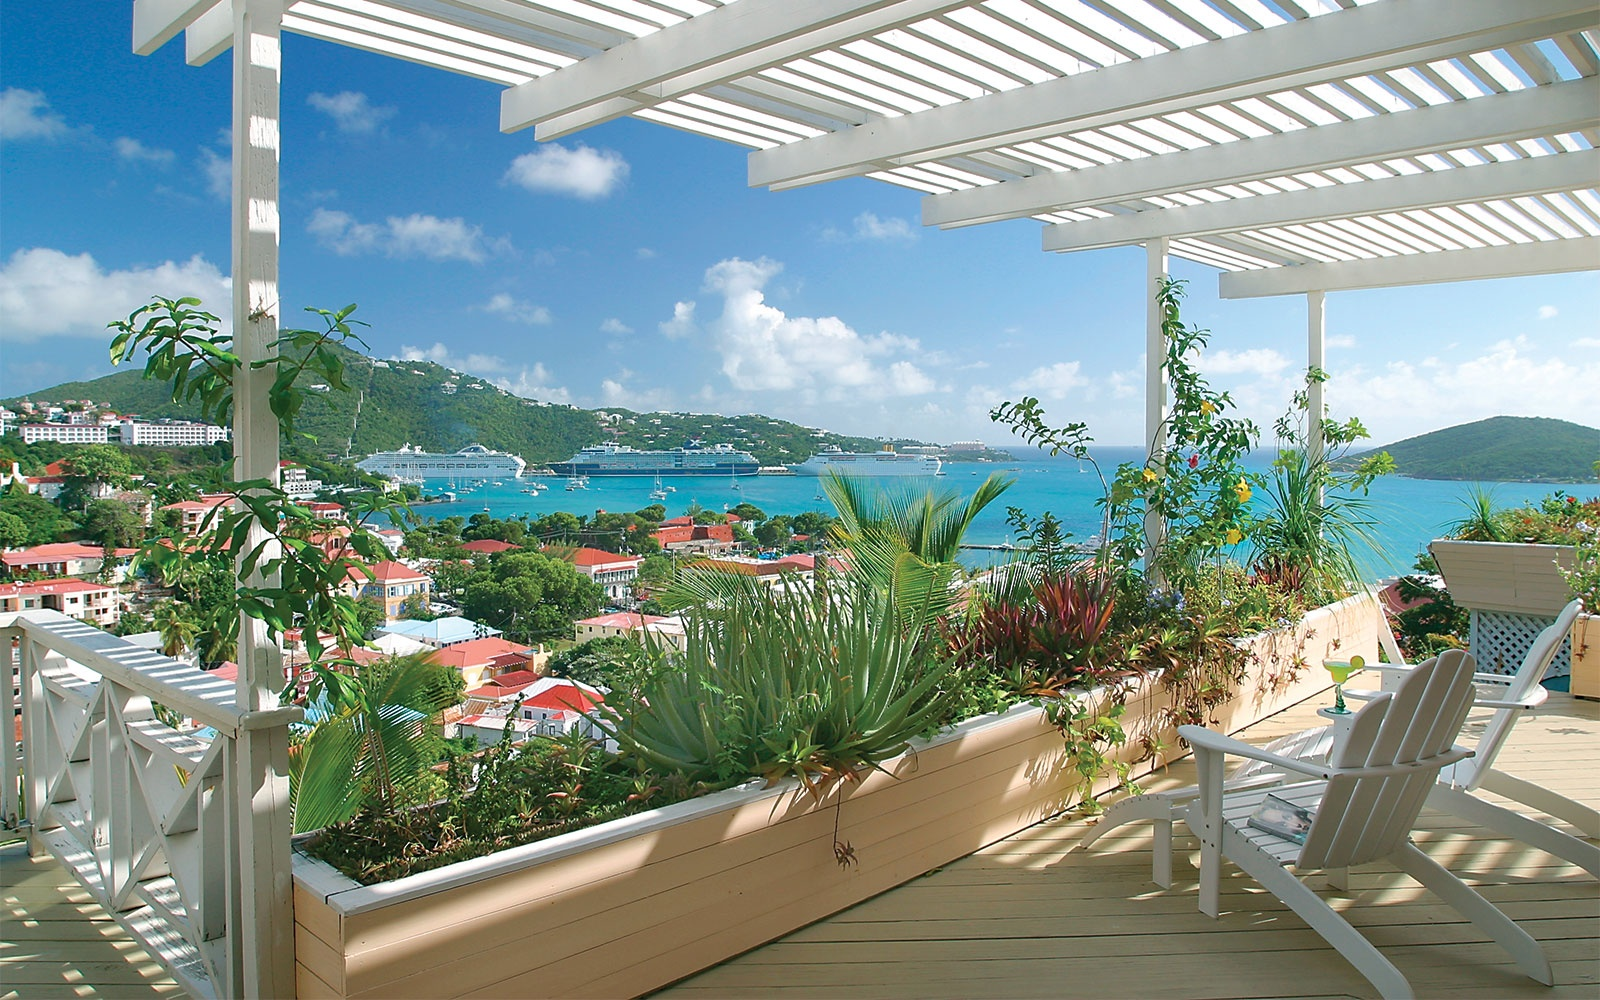 Bellavista Bed & Breakfast St. Thomas